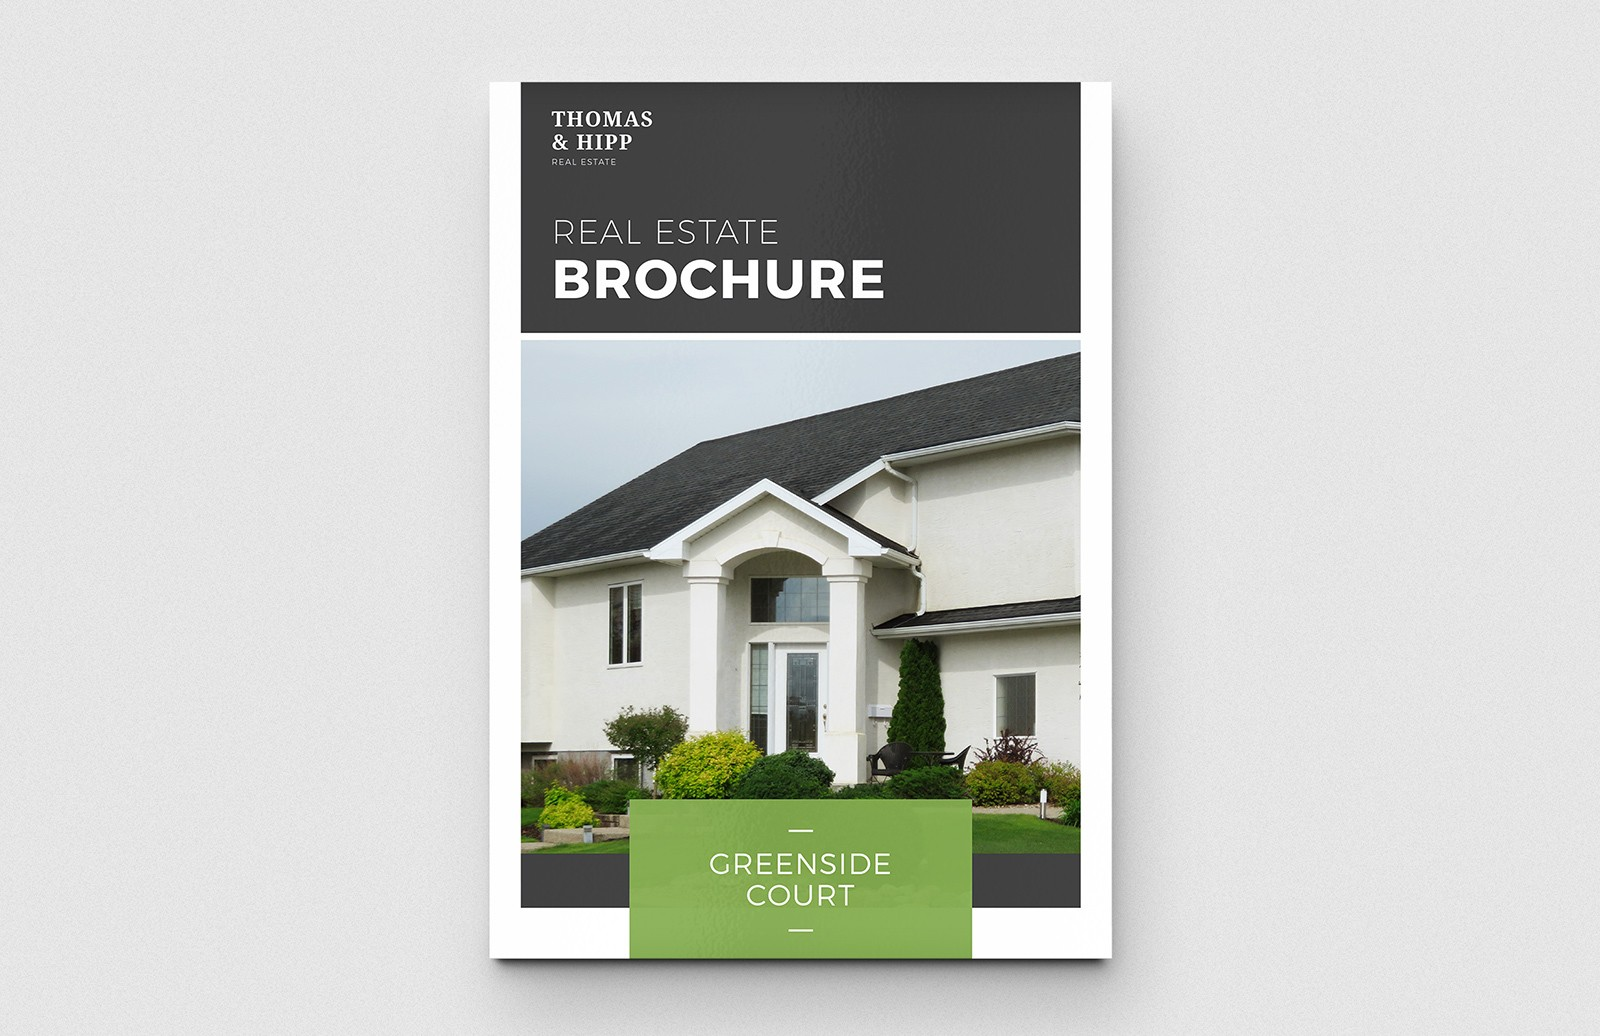 Real Estate Brochure Template Medialoot - Real estate brochure templates